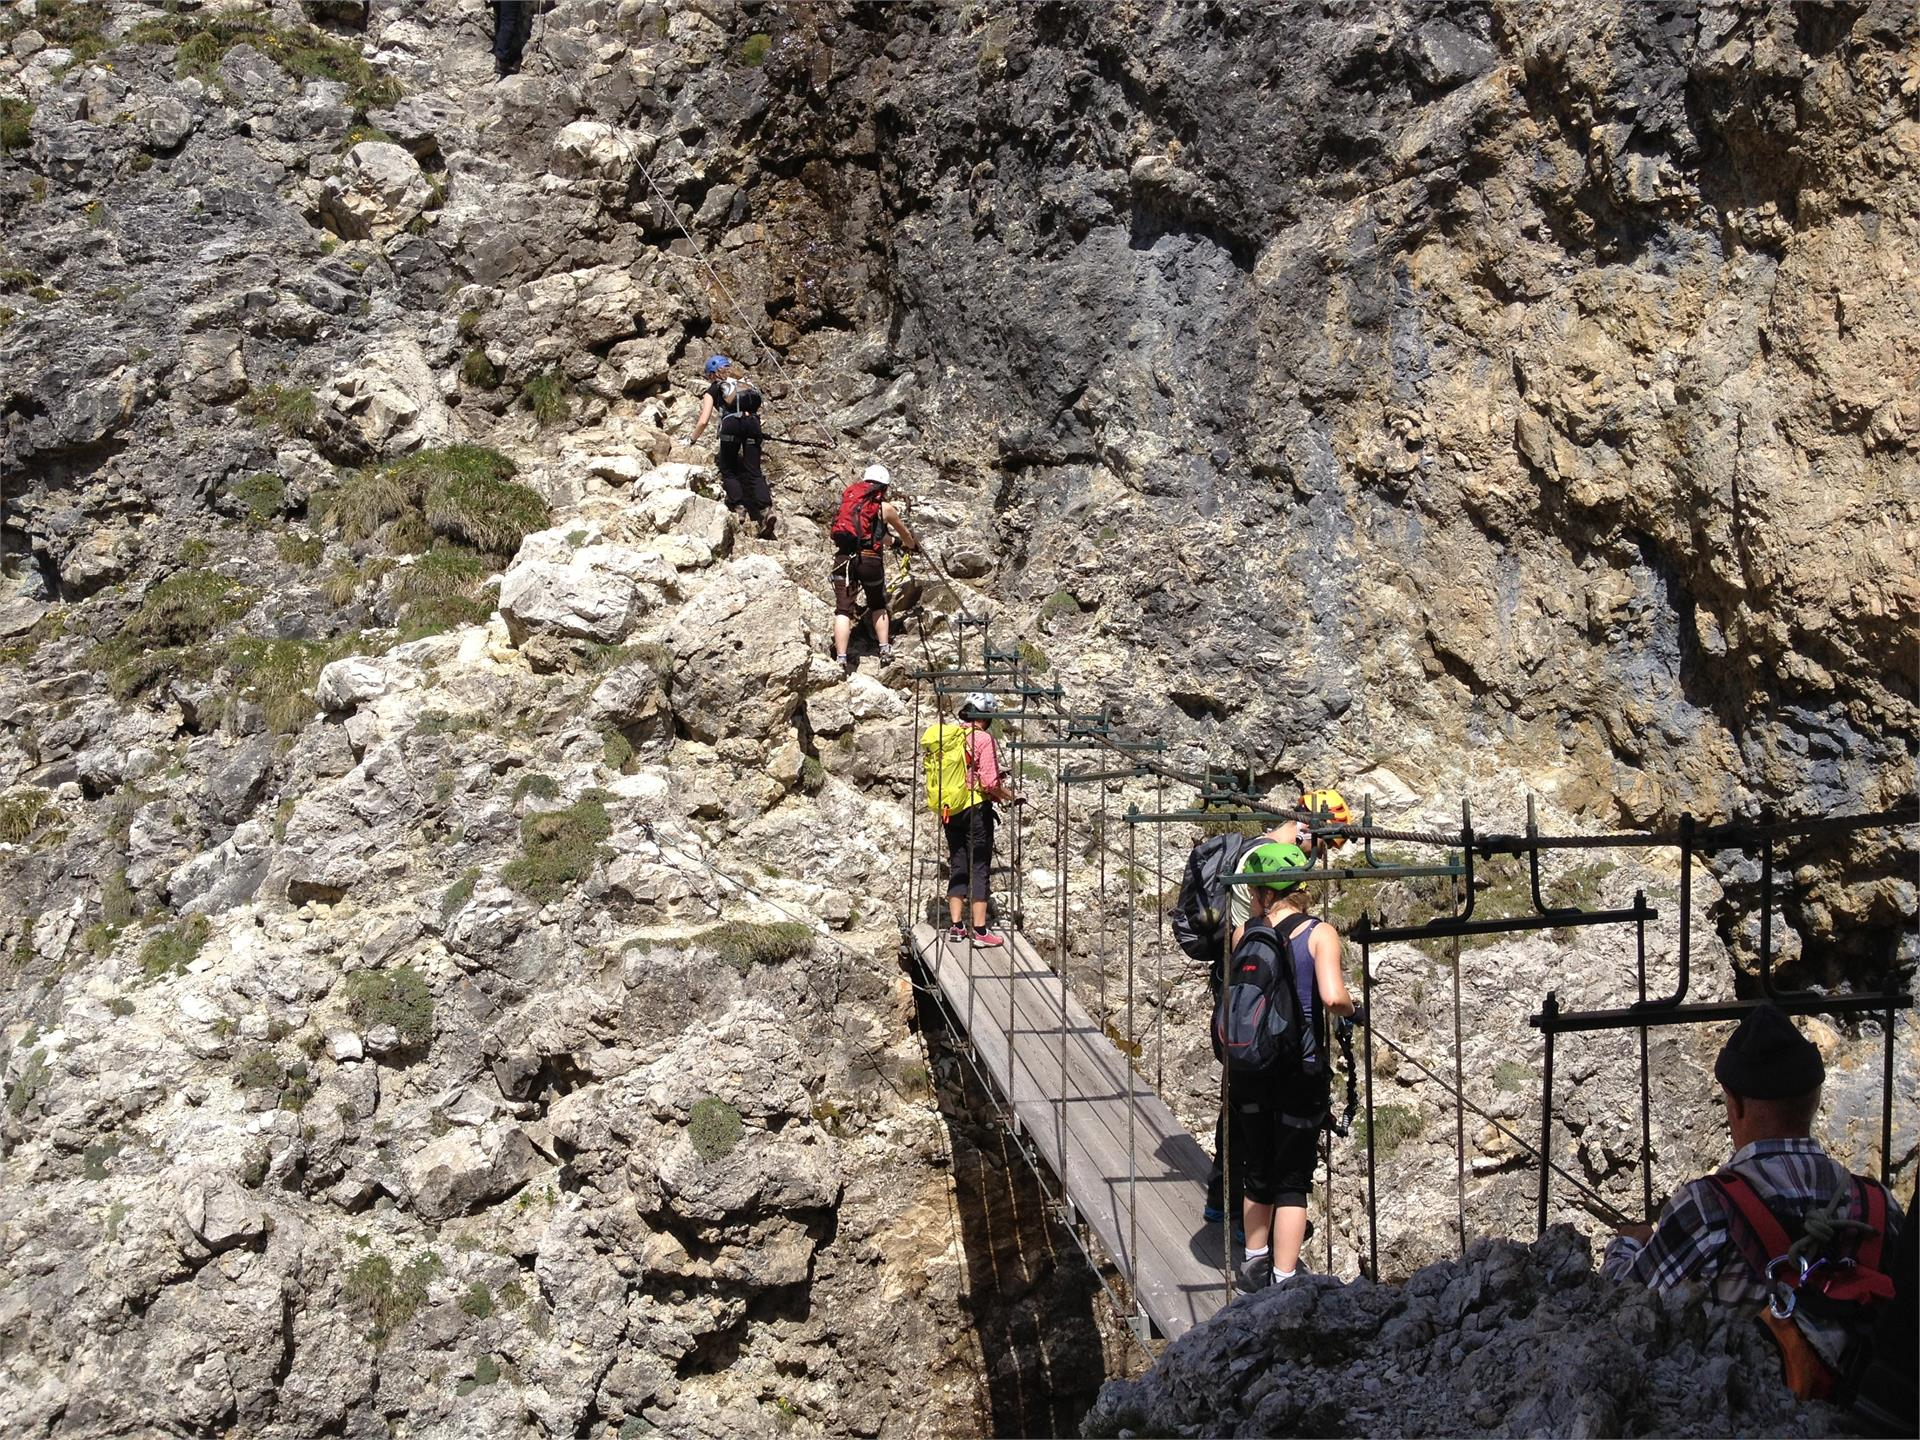 Brigata Alpina Tridentina Via Ferrata in the Sella Group